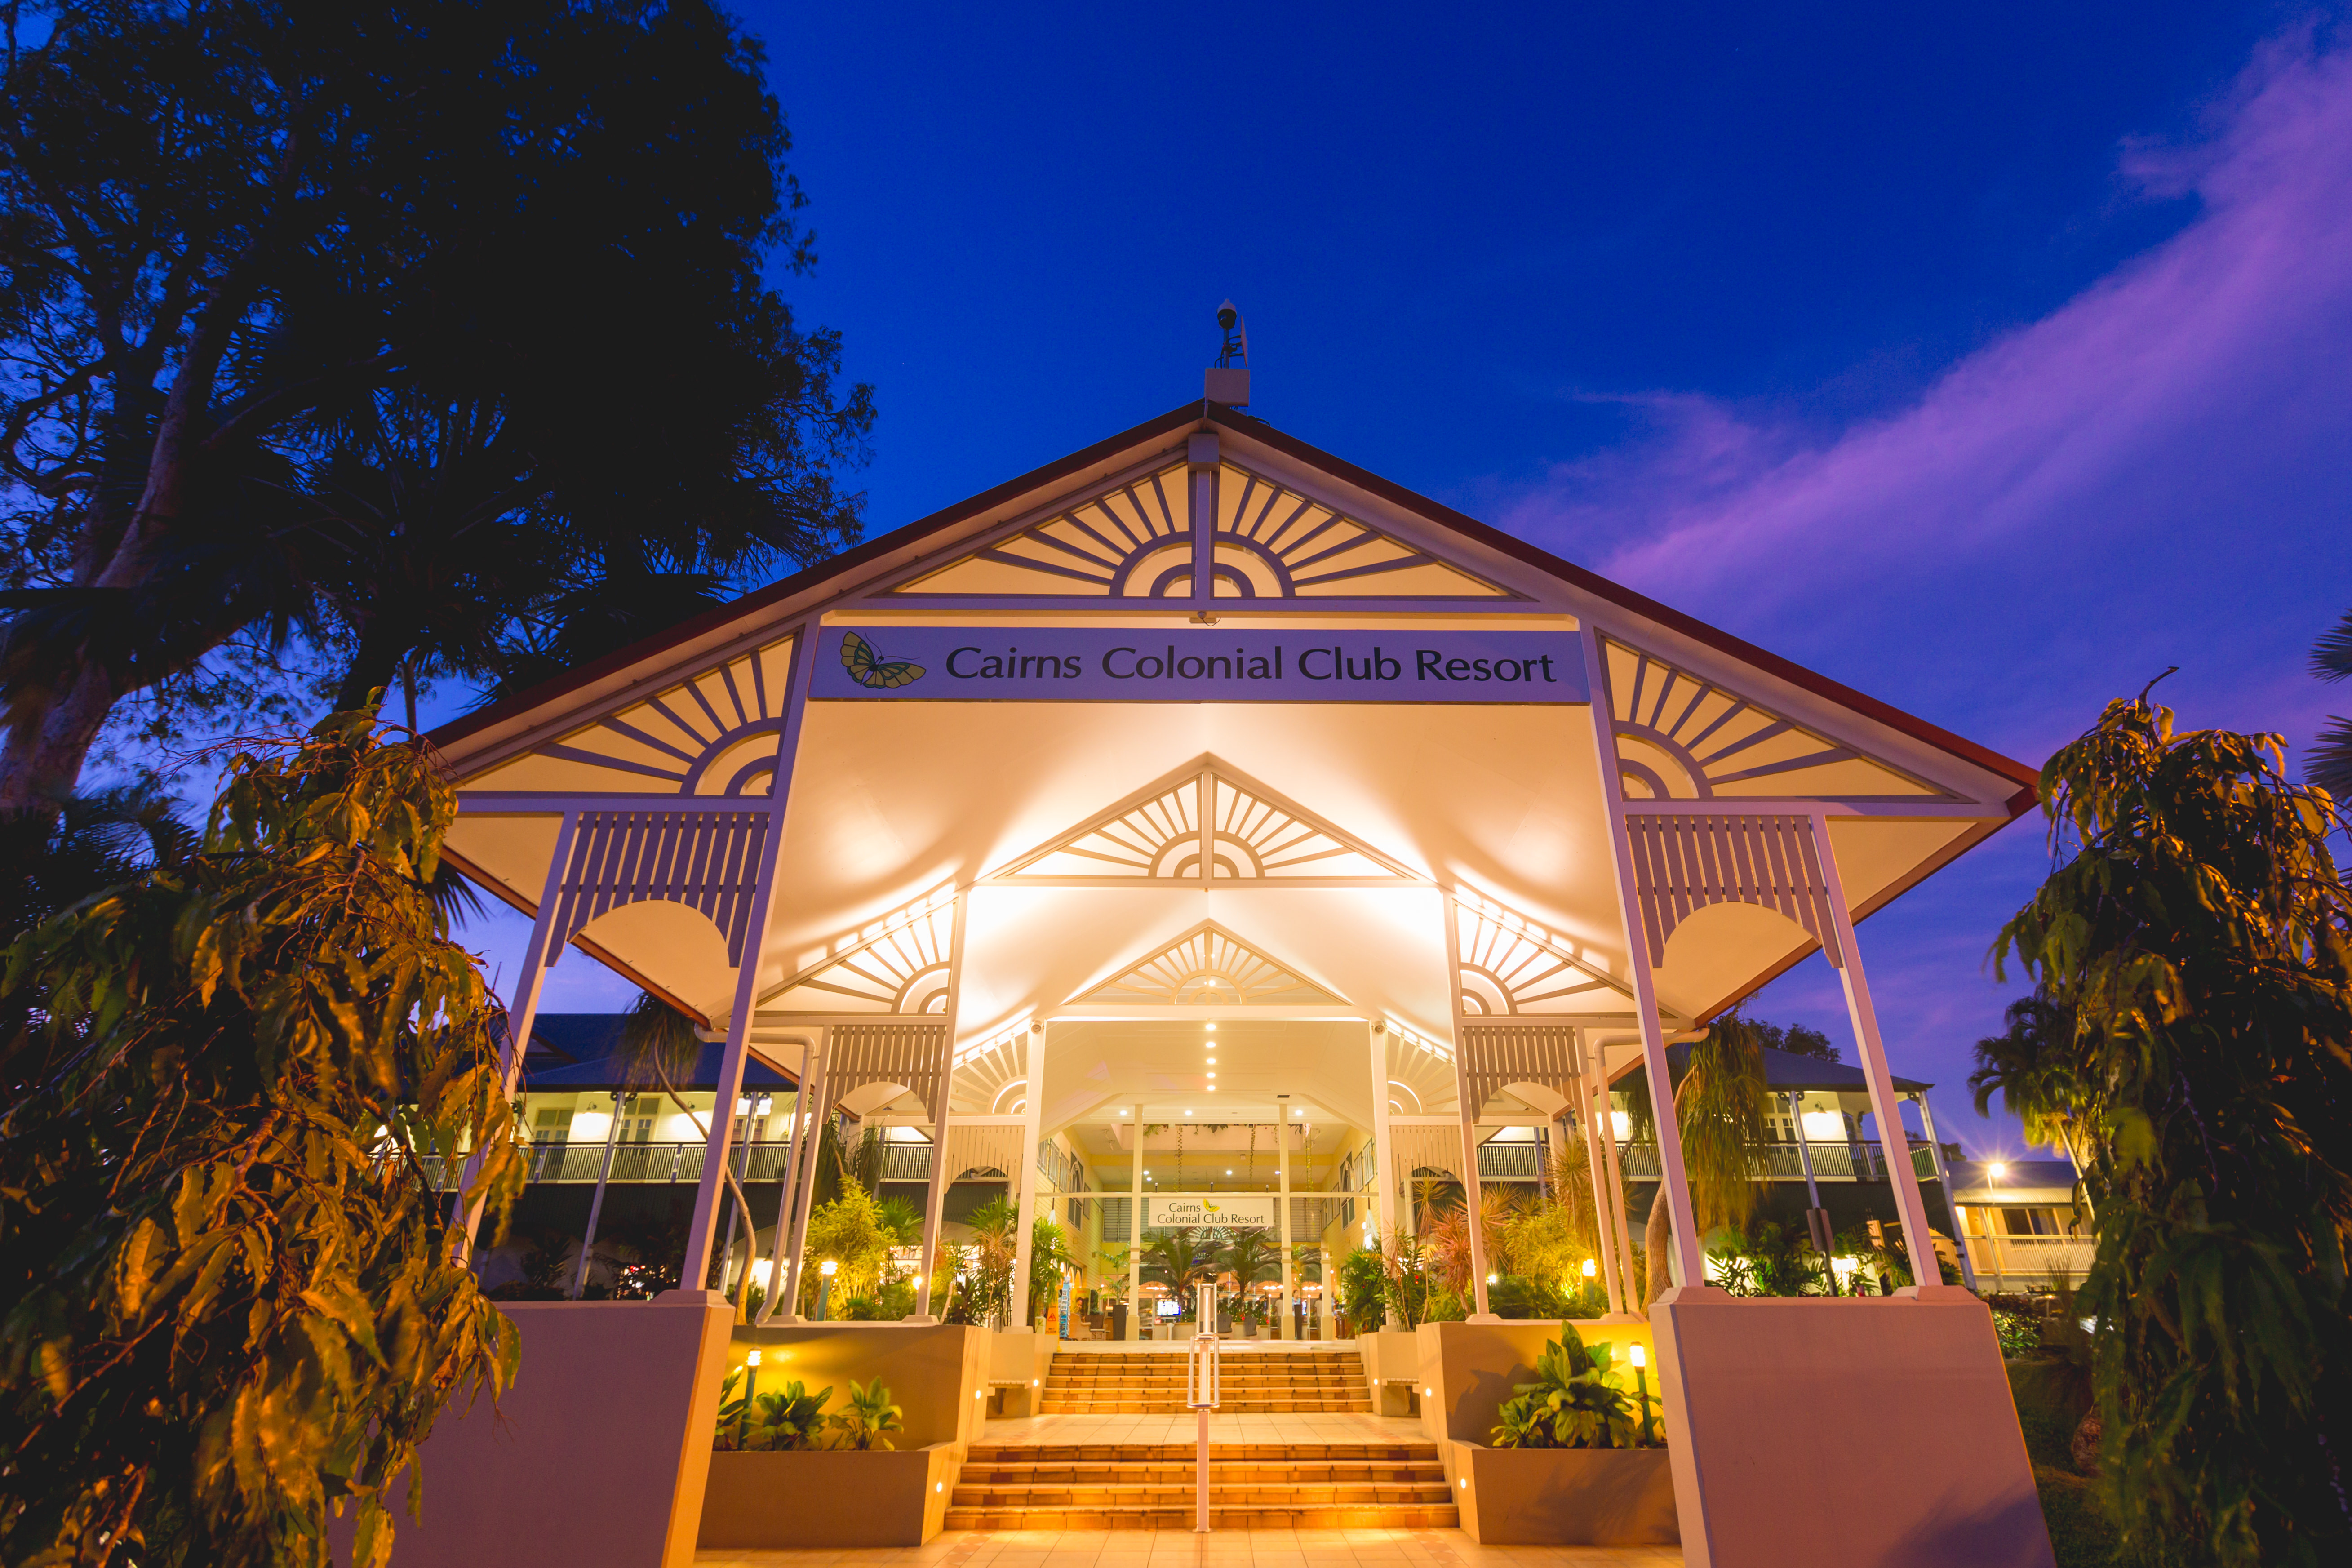 Cairns Colonial Club Resort Venue Hire Enquire Today